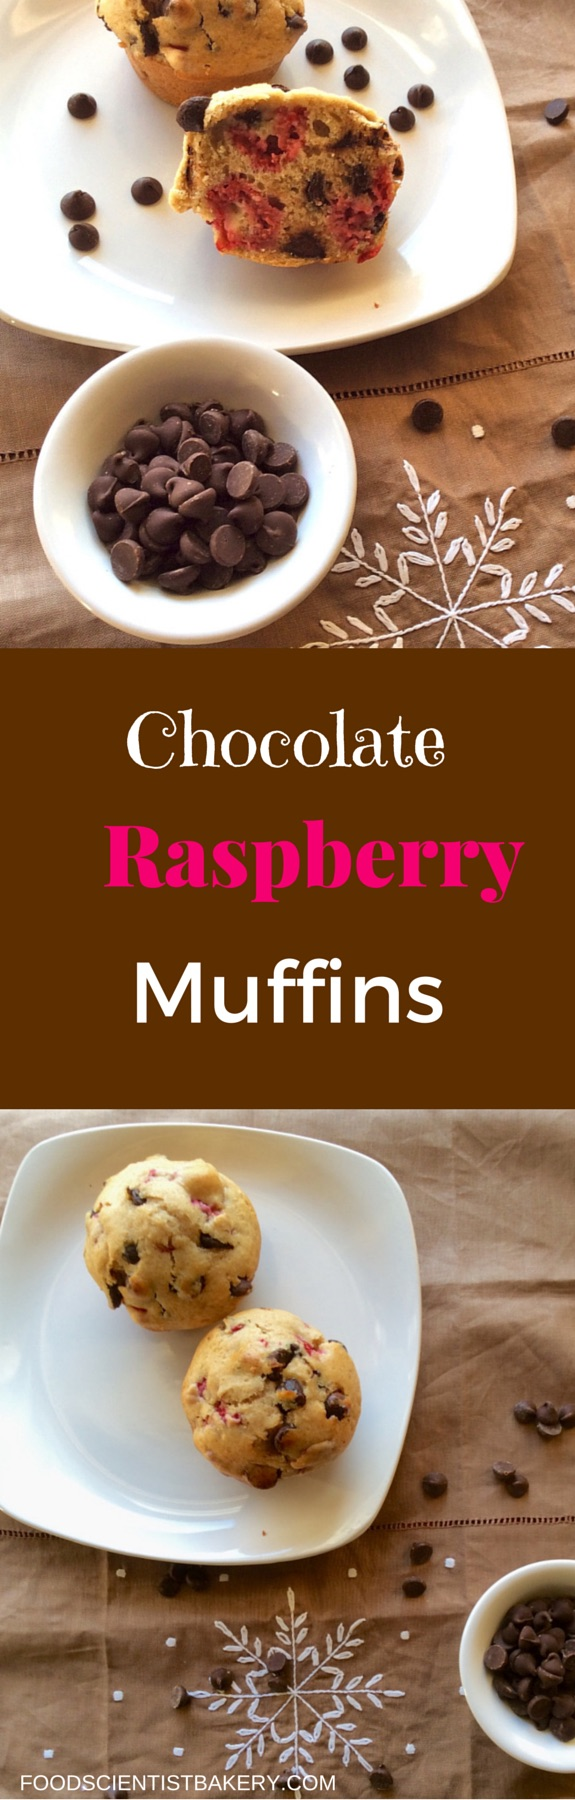 Chocolate Raspberry Muffins-raspberries and chocolate chips in a bakery style muffin!